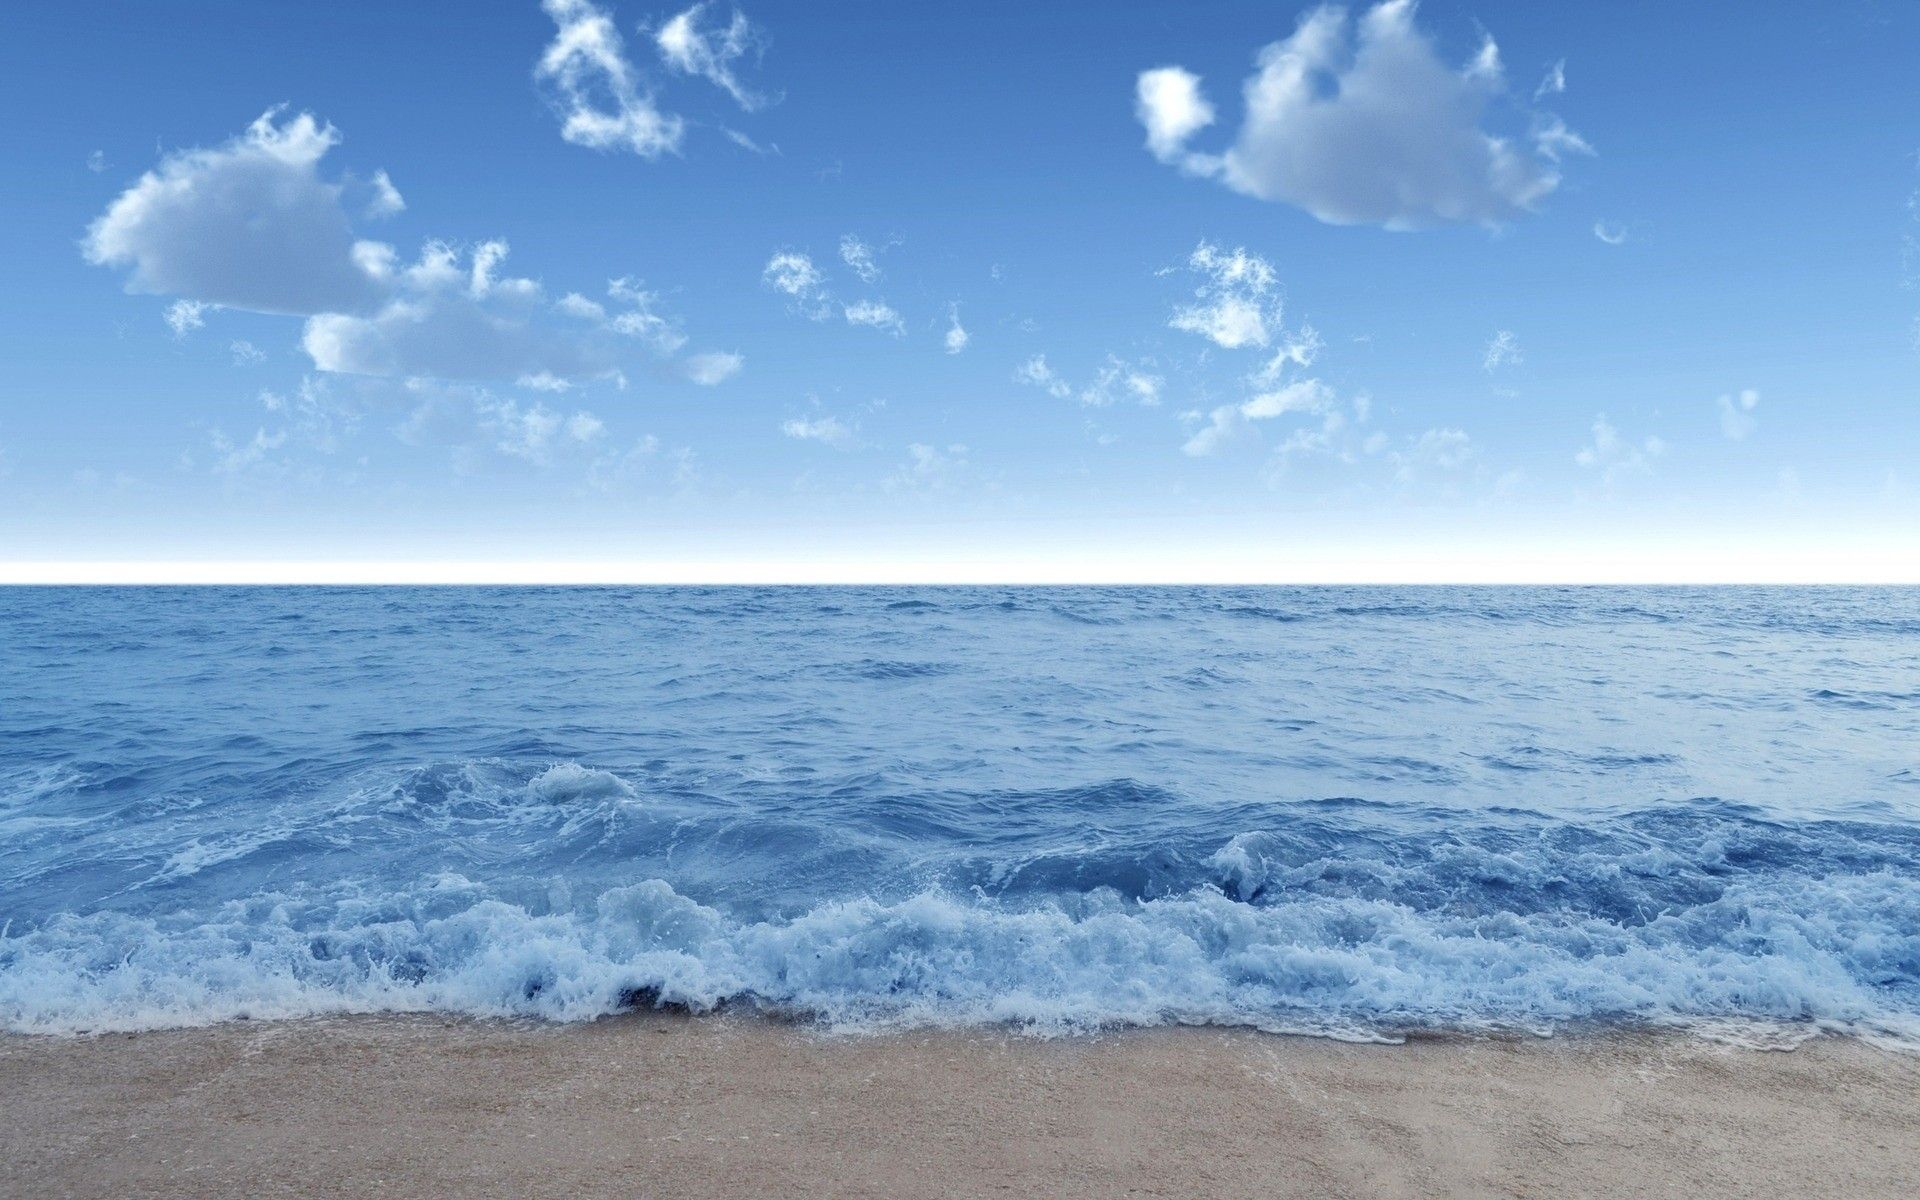 Download 440+ Background Tumblr Beach HD Terbaik